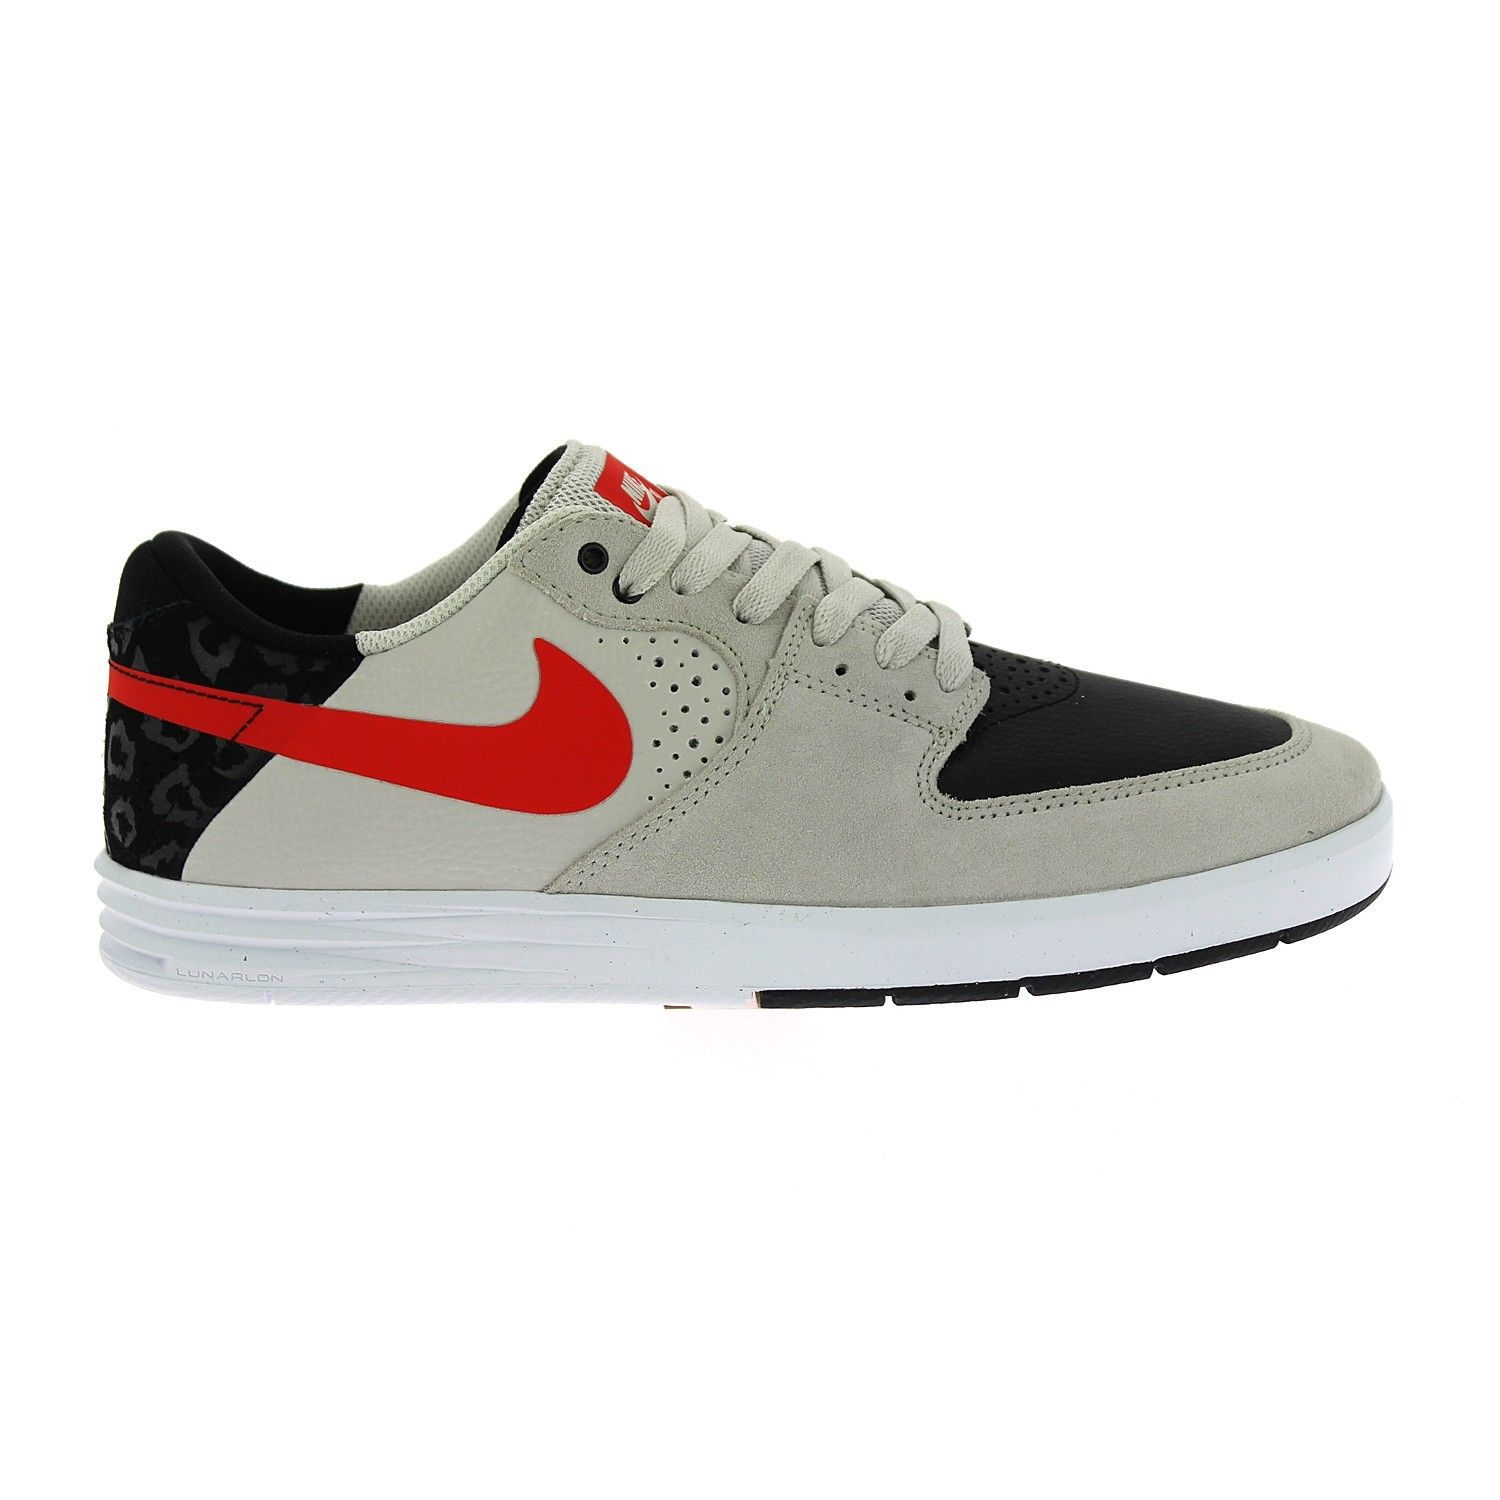 The Nike SB Paul Rodriguez 7 Low Men's Shoe is equipped with Lunarlon  cushioning in a Phylon midsole for excellent impact protection.